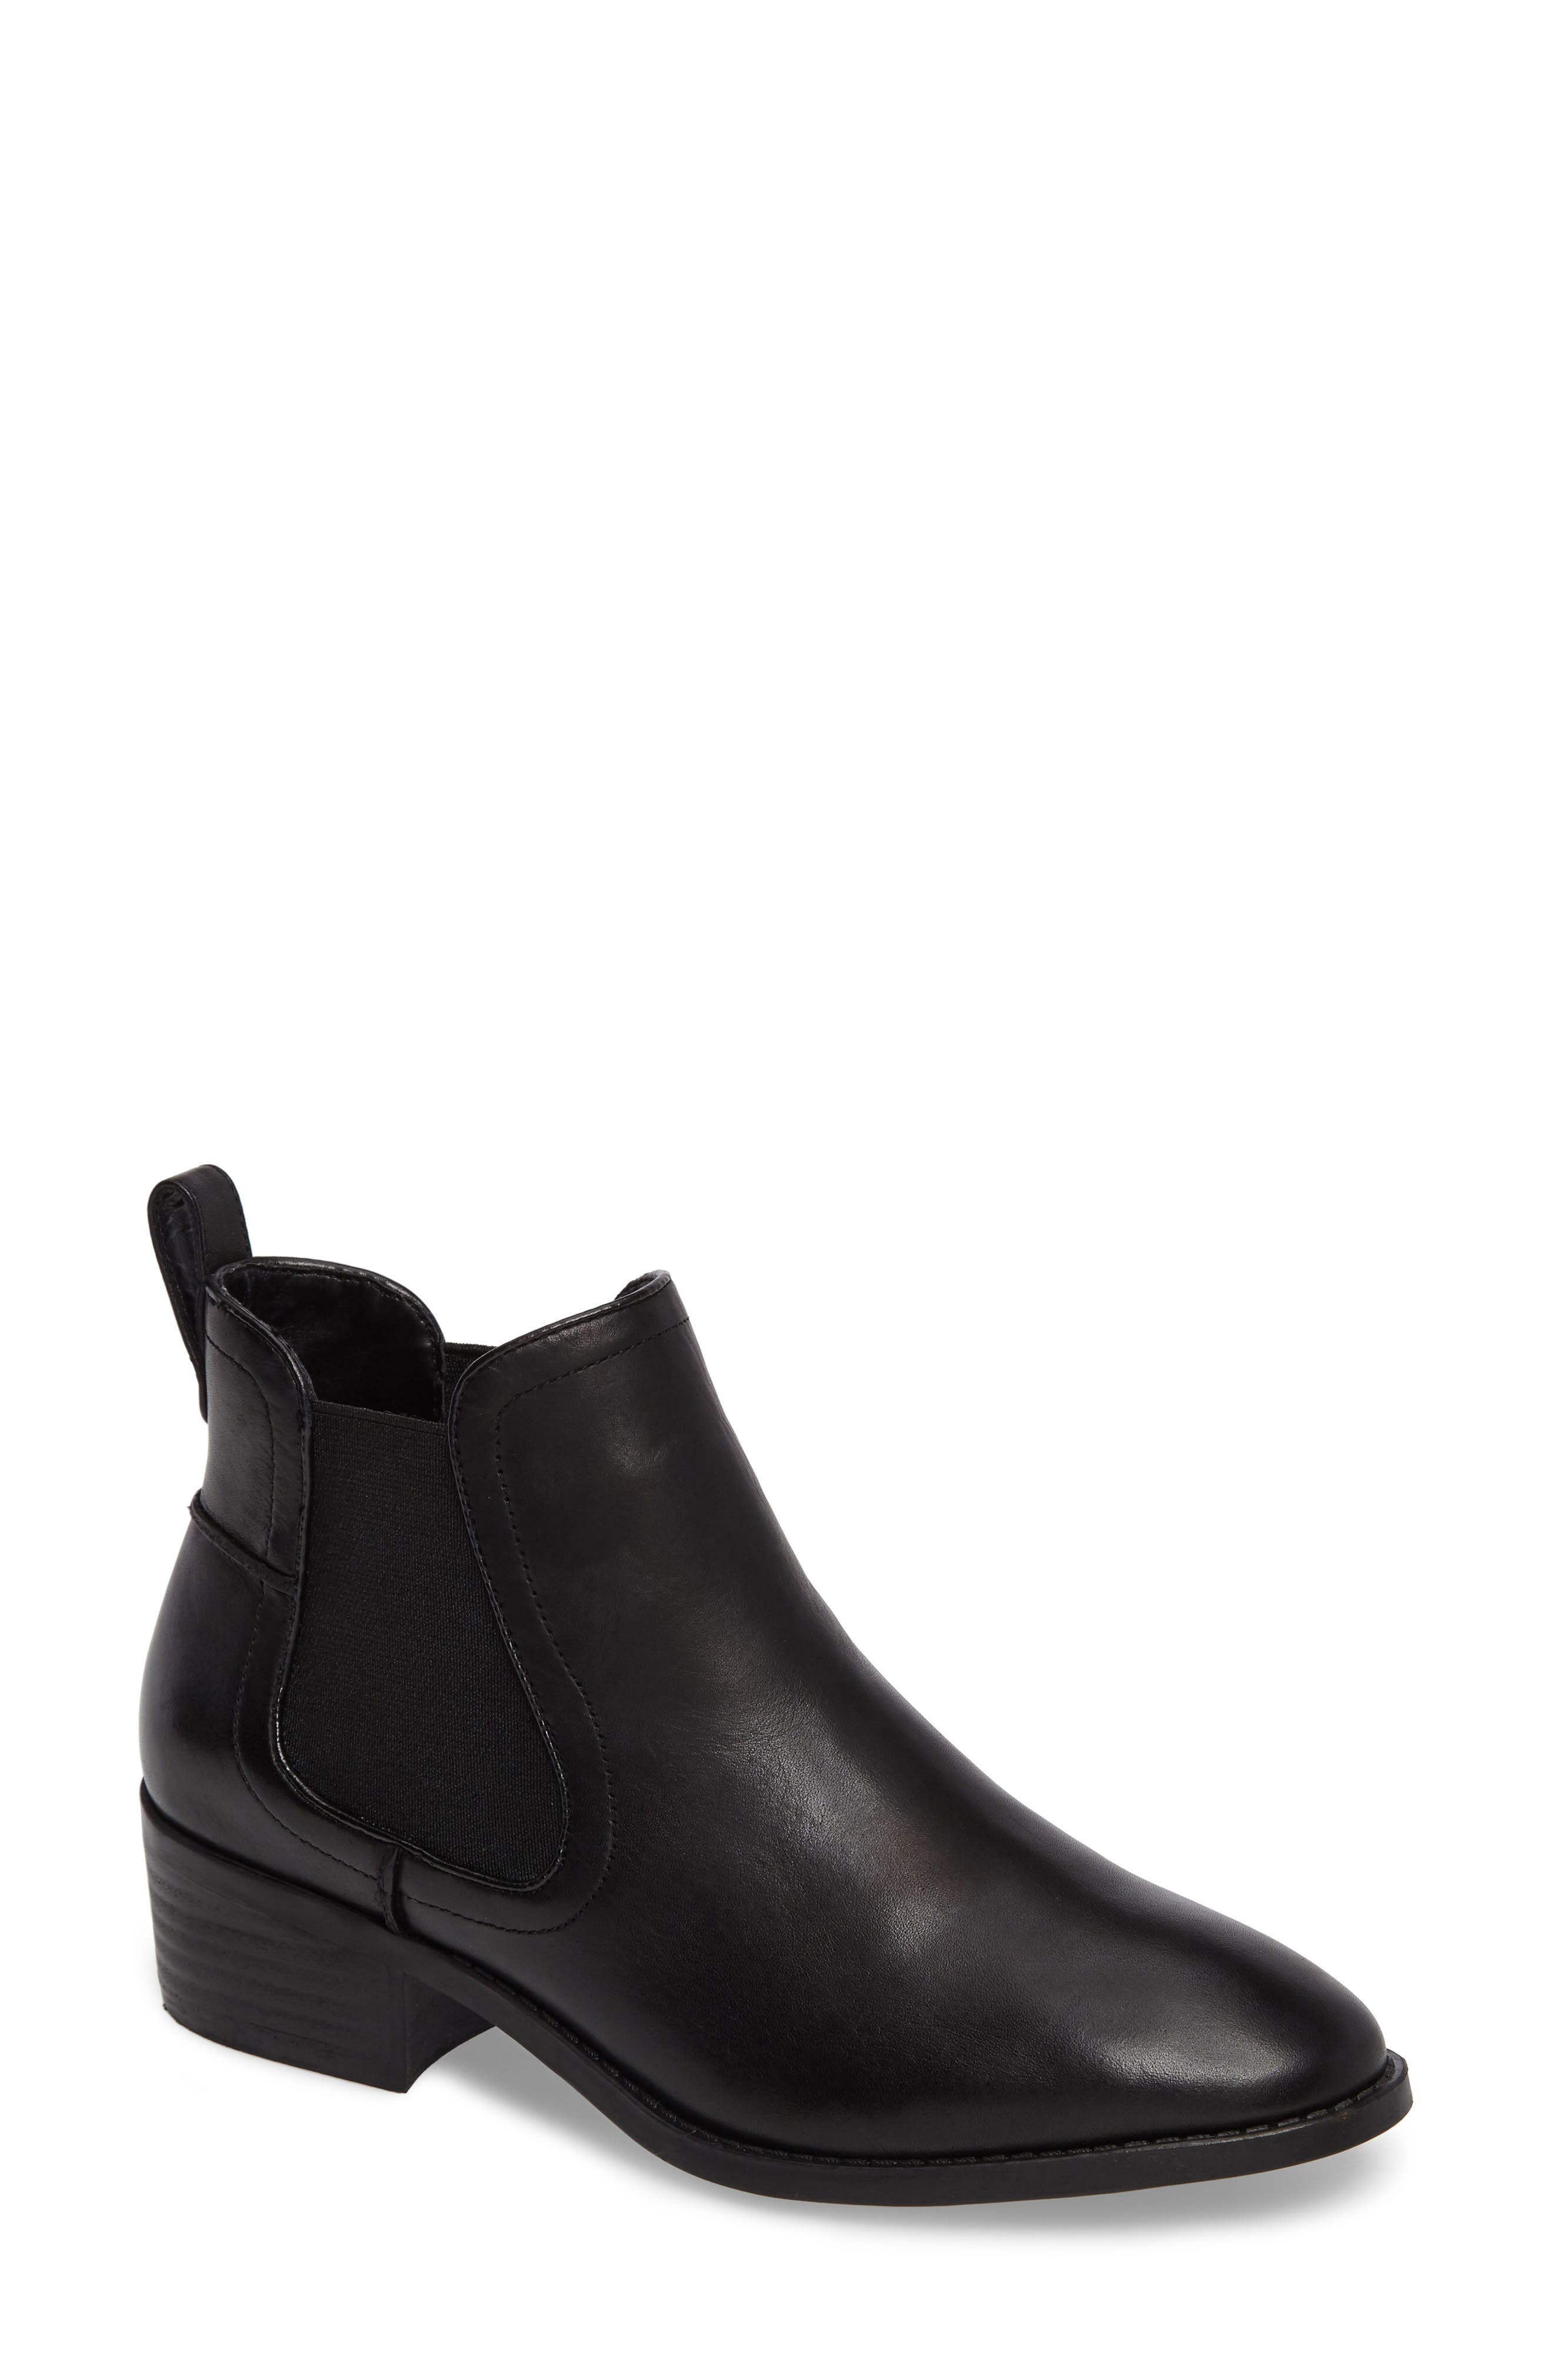 Dicey Chelsea Boot,                             Main thumbnail 1, color,                             Black Leather